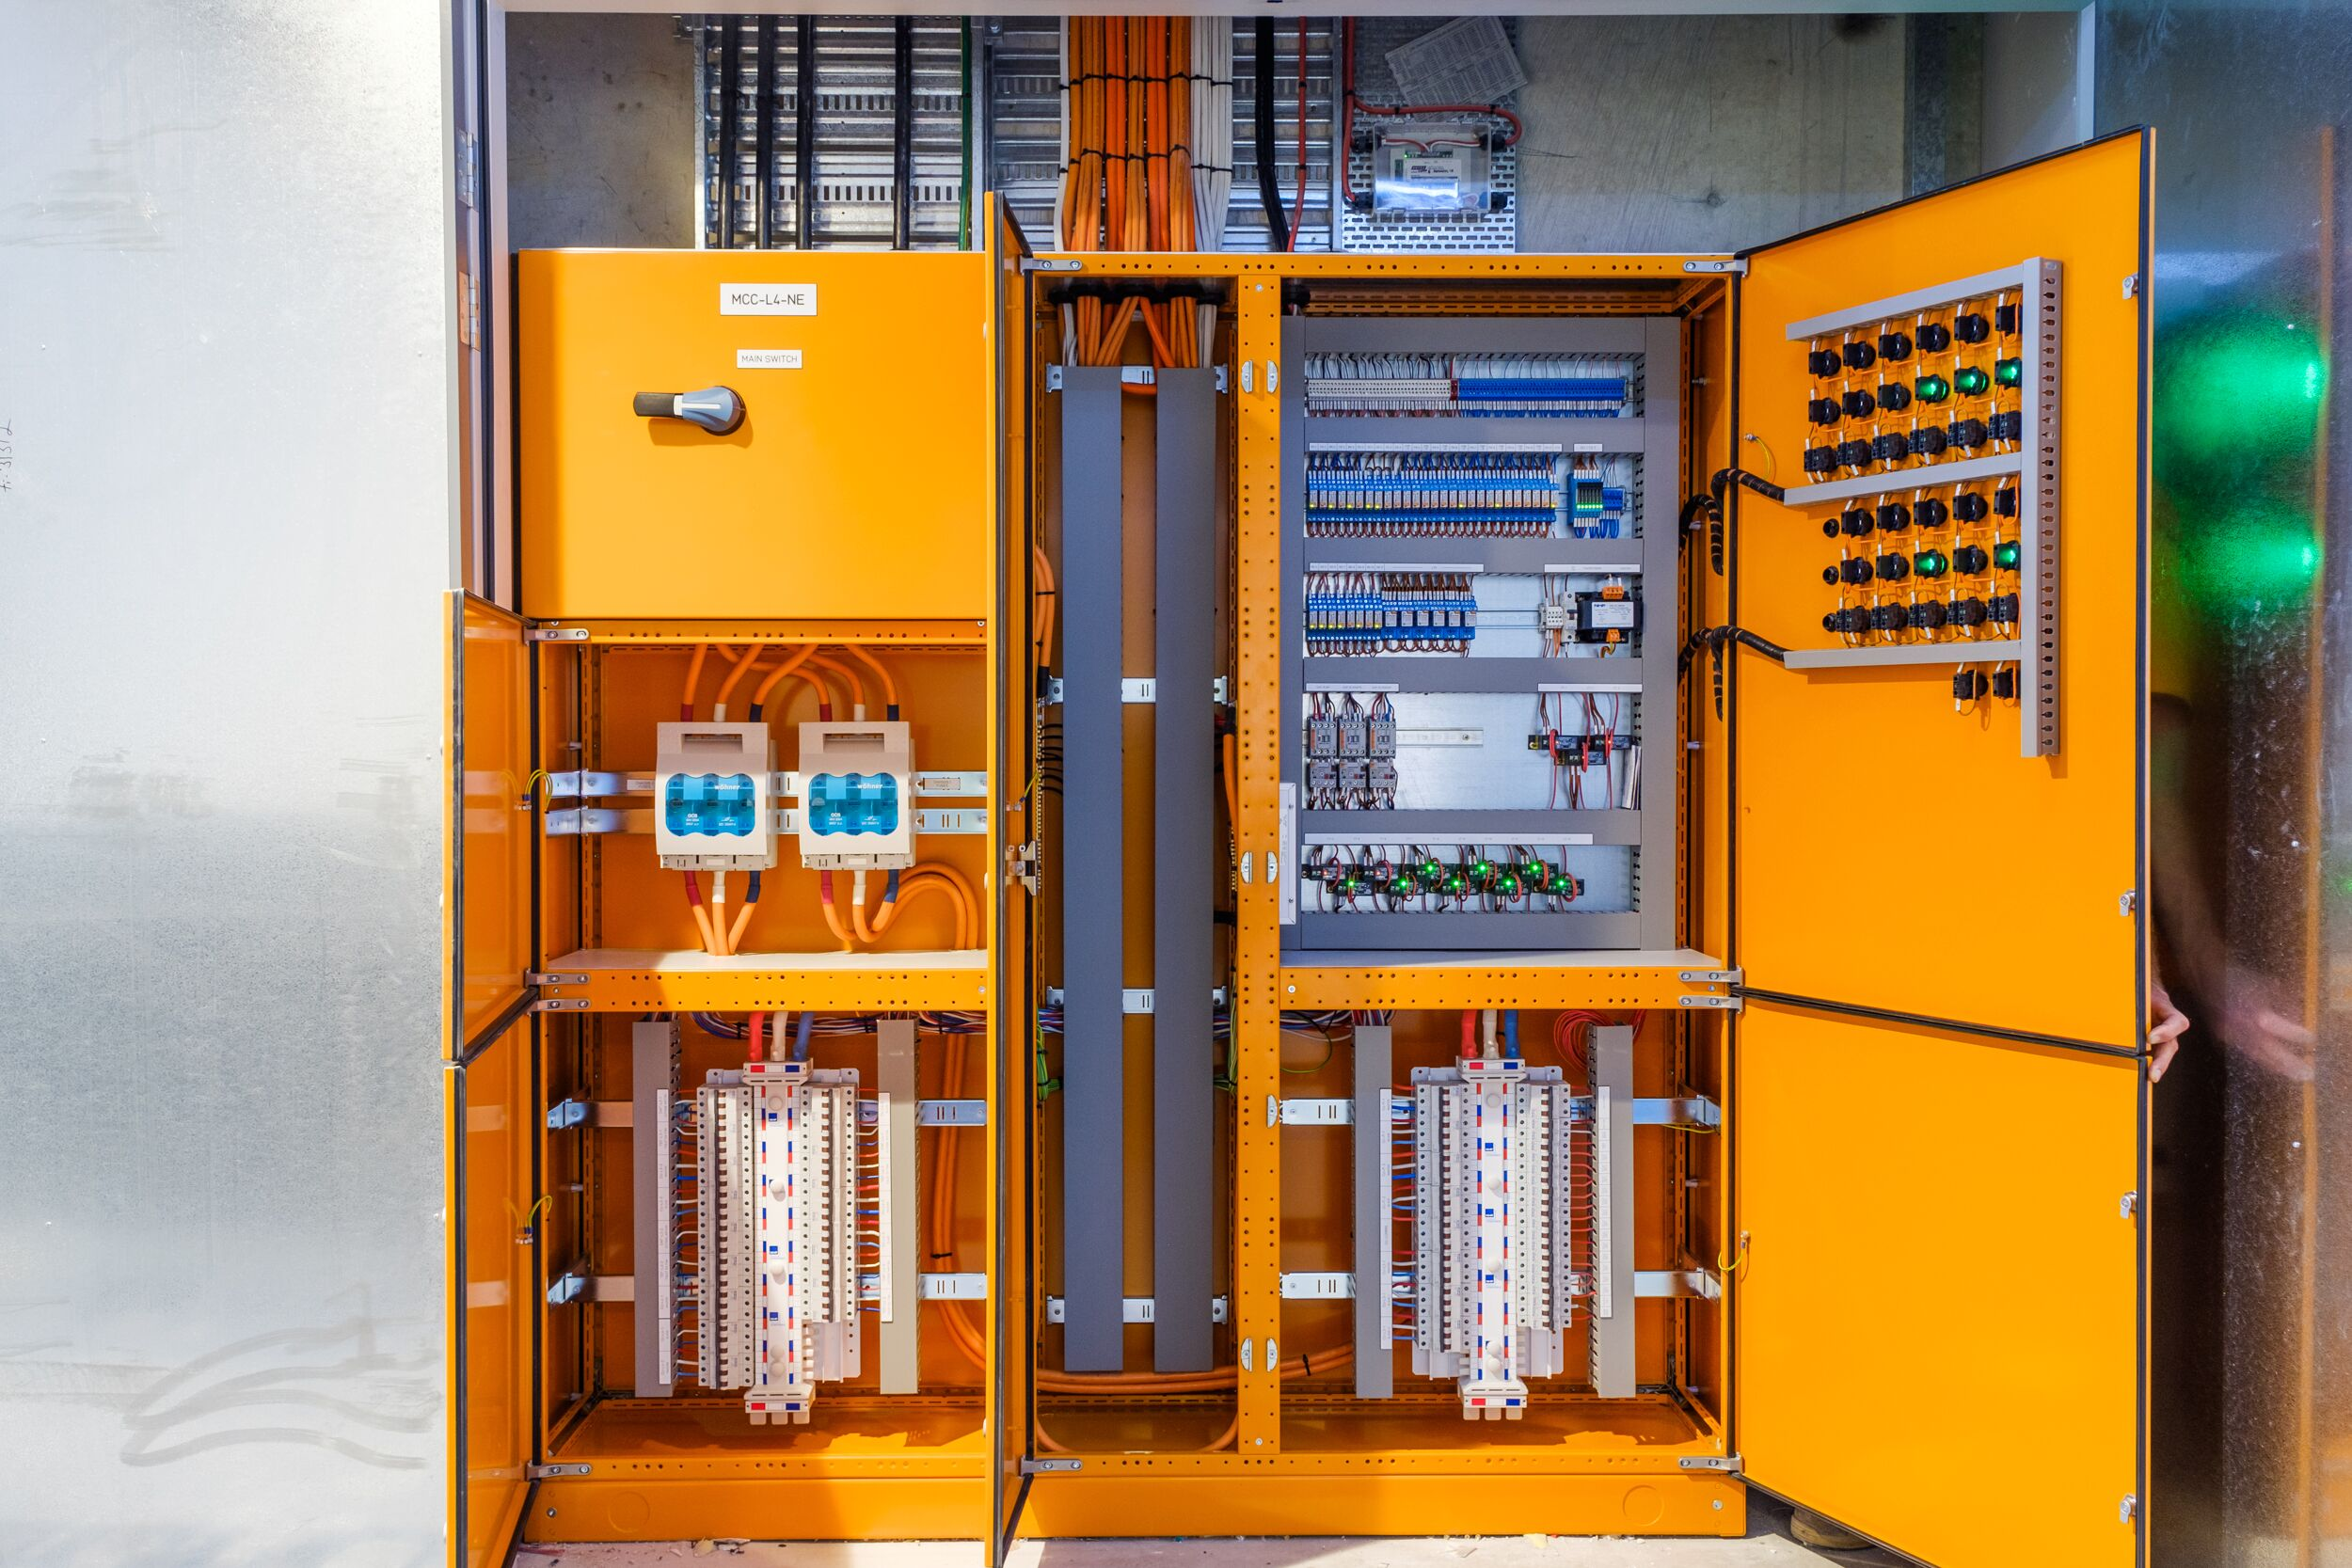 Mechanical Service Switchboards feature image